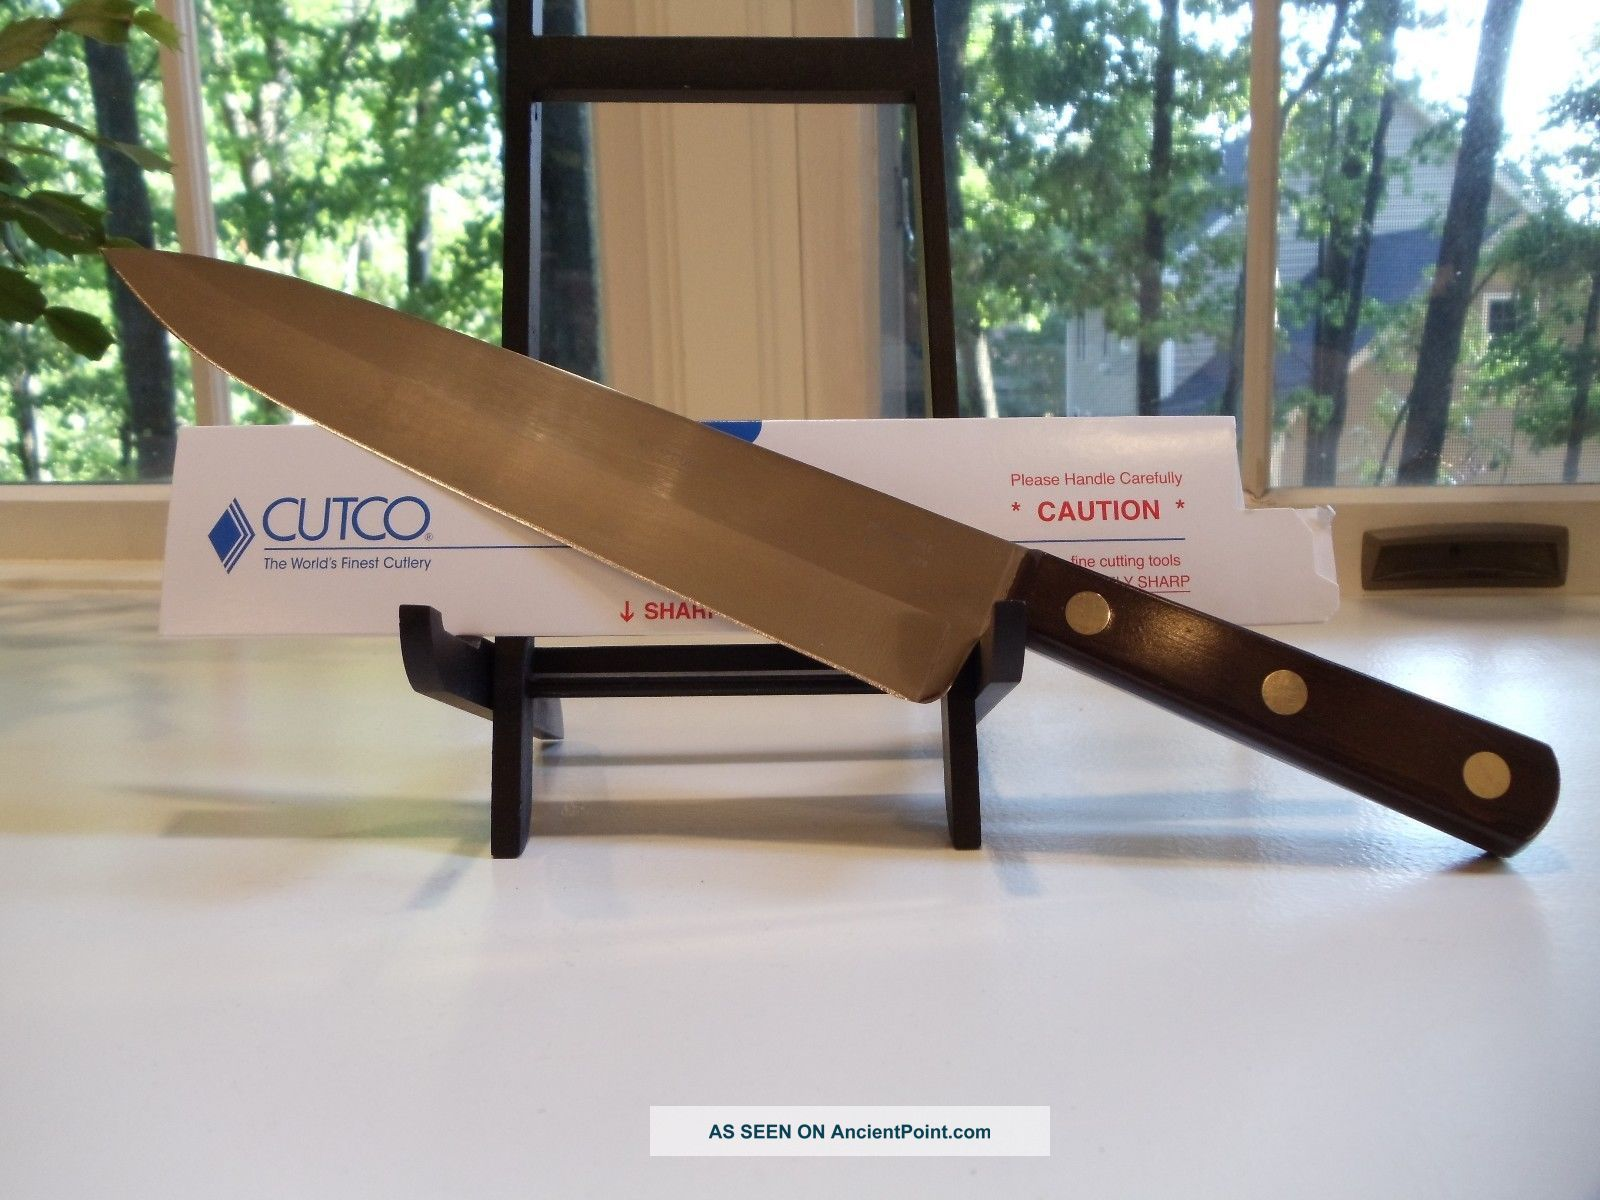 Cutco 9 1/4 Inch French Chef ' S Knife - No 35 Other Antique Home & Hearth photo